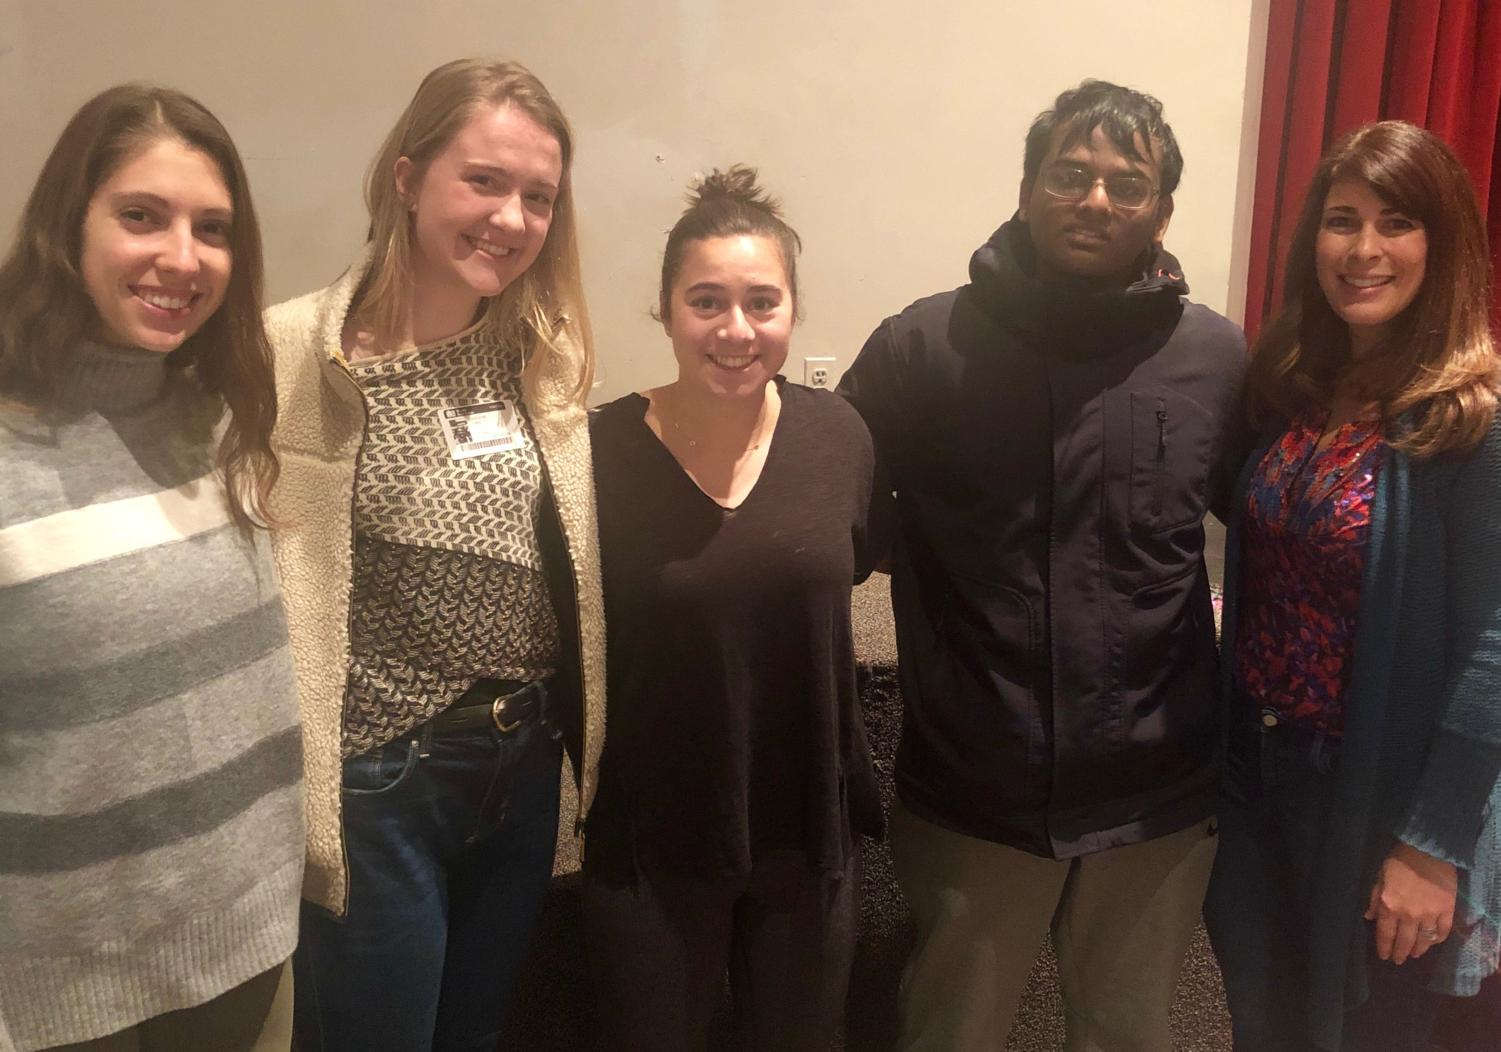 These four McLean alumni (from left to right: Olivia McAuliffe, Caroline Lewis, Grace Roomian, Karthik Natarajan and Career Center Specialist Laura Venos) came to the auditorium on Wednesday. They shared their best advice and personal anecdotes to help students on their journeys towards college.